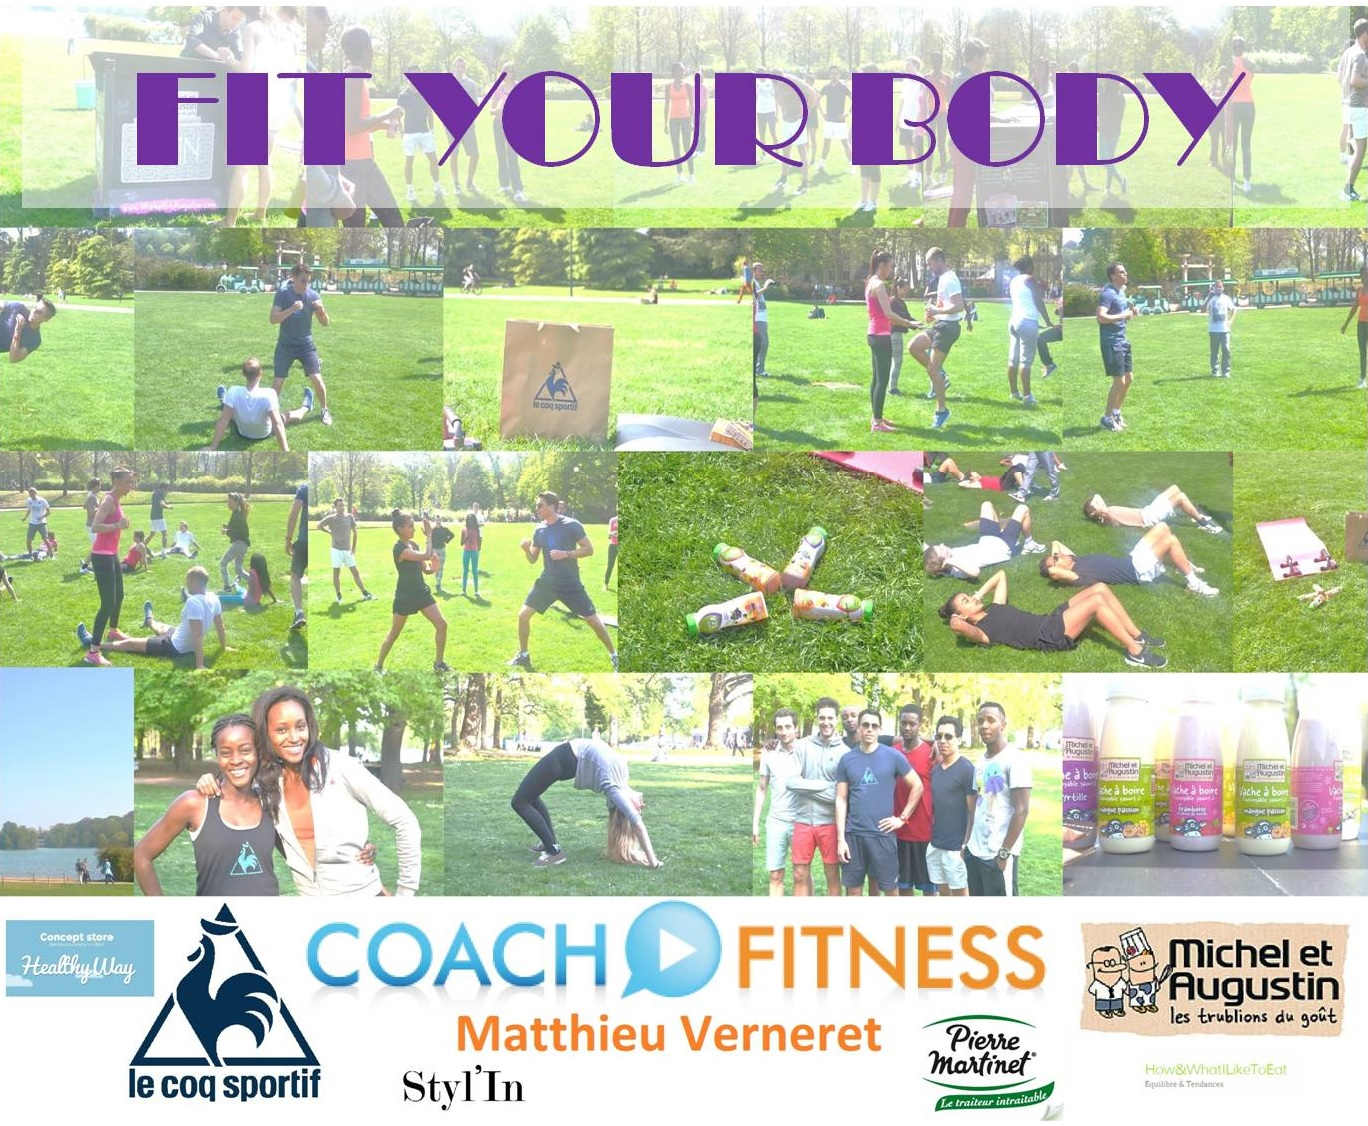 FIT YOUR BODY au Parc de la Tête d'Or – FIT YOUR BODY at Parc de la Tête d'Or